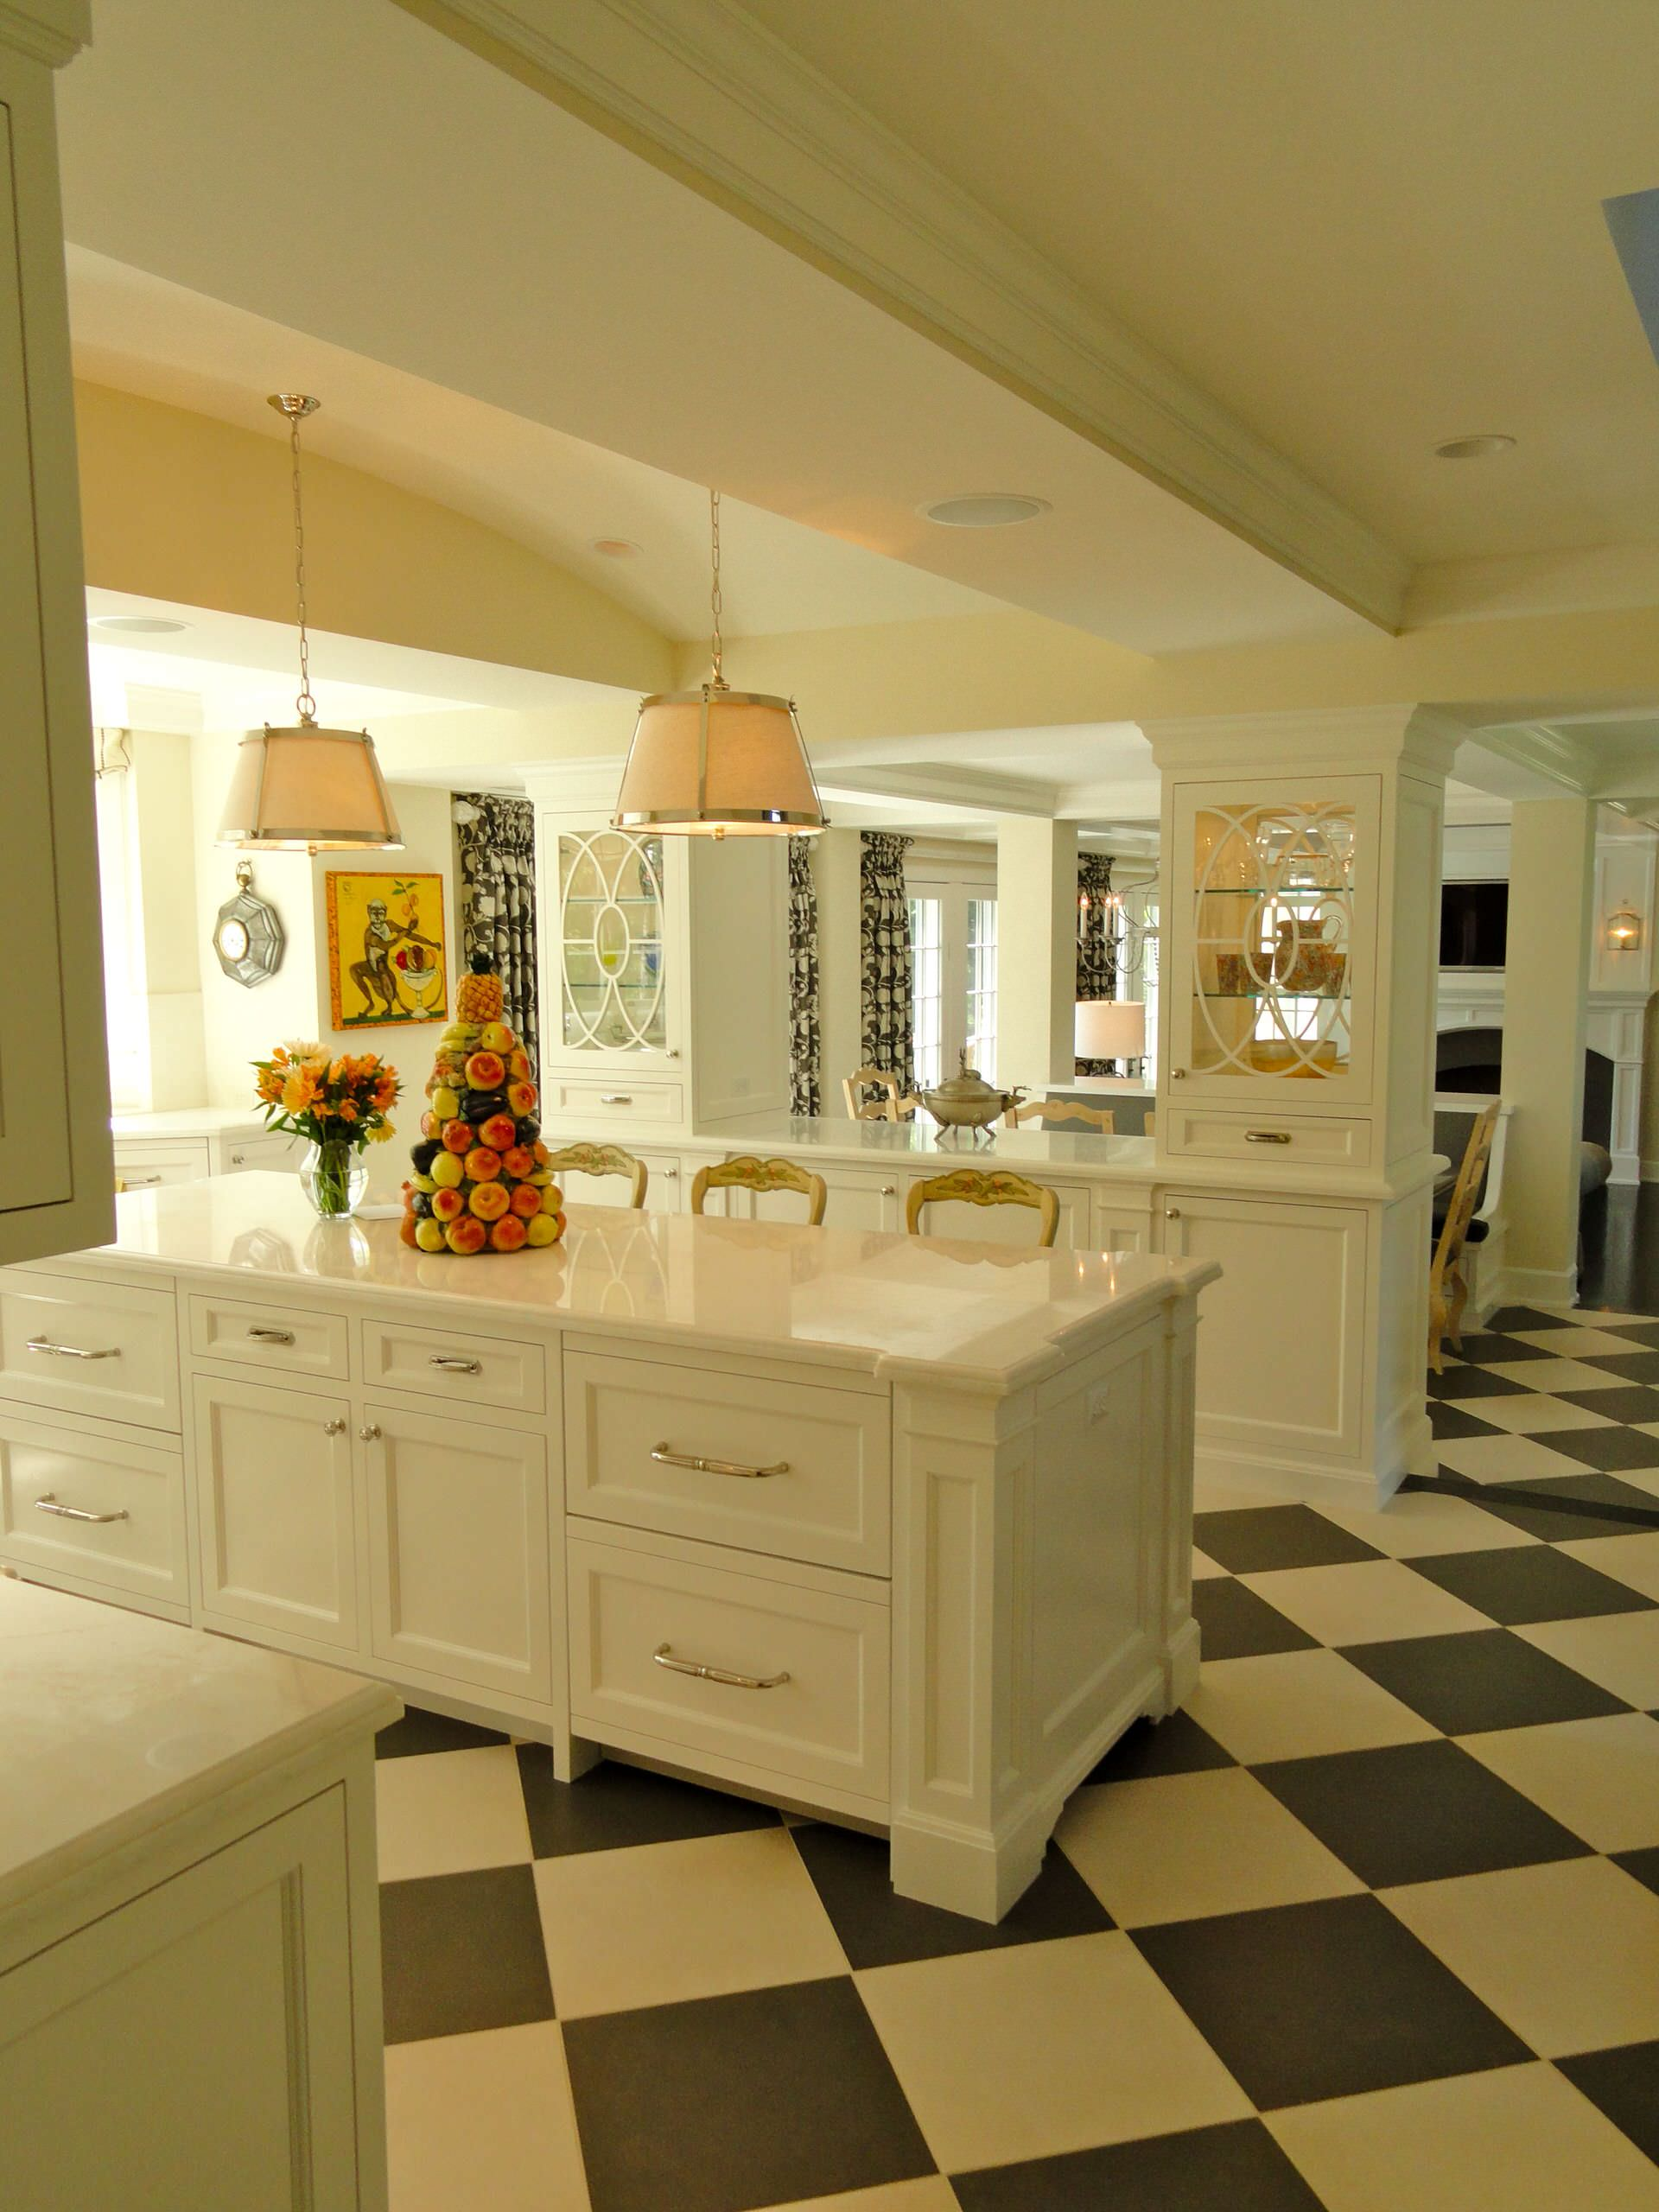 black and white titles kitchen white counter tops marble white cabinets open layout hanging lamps decorating